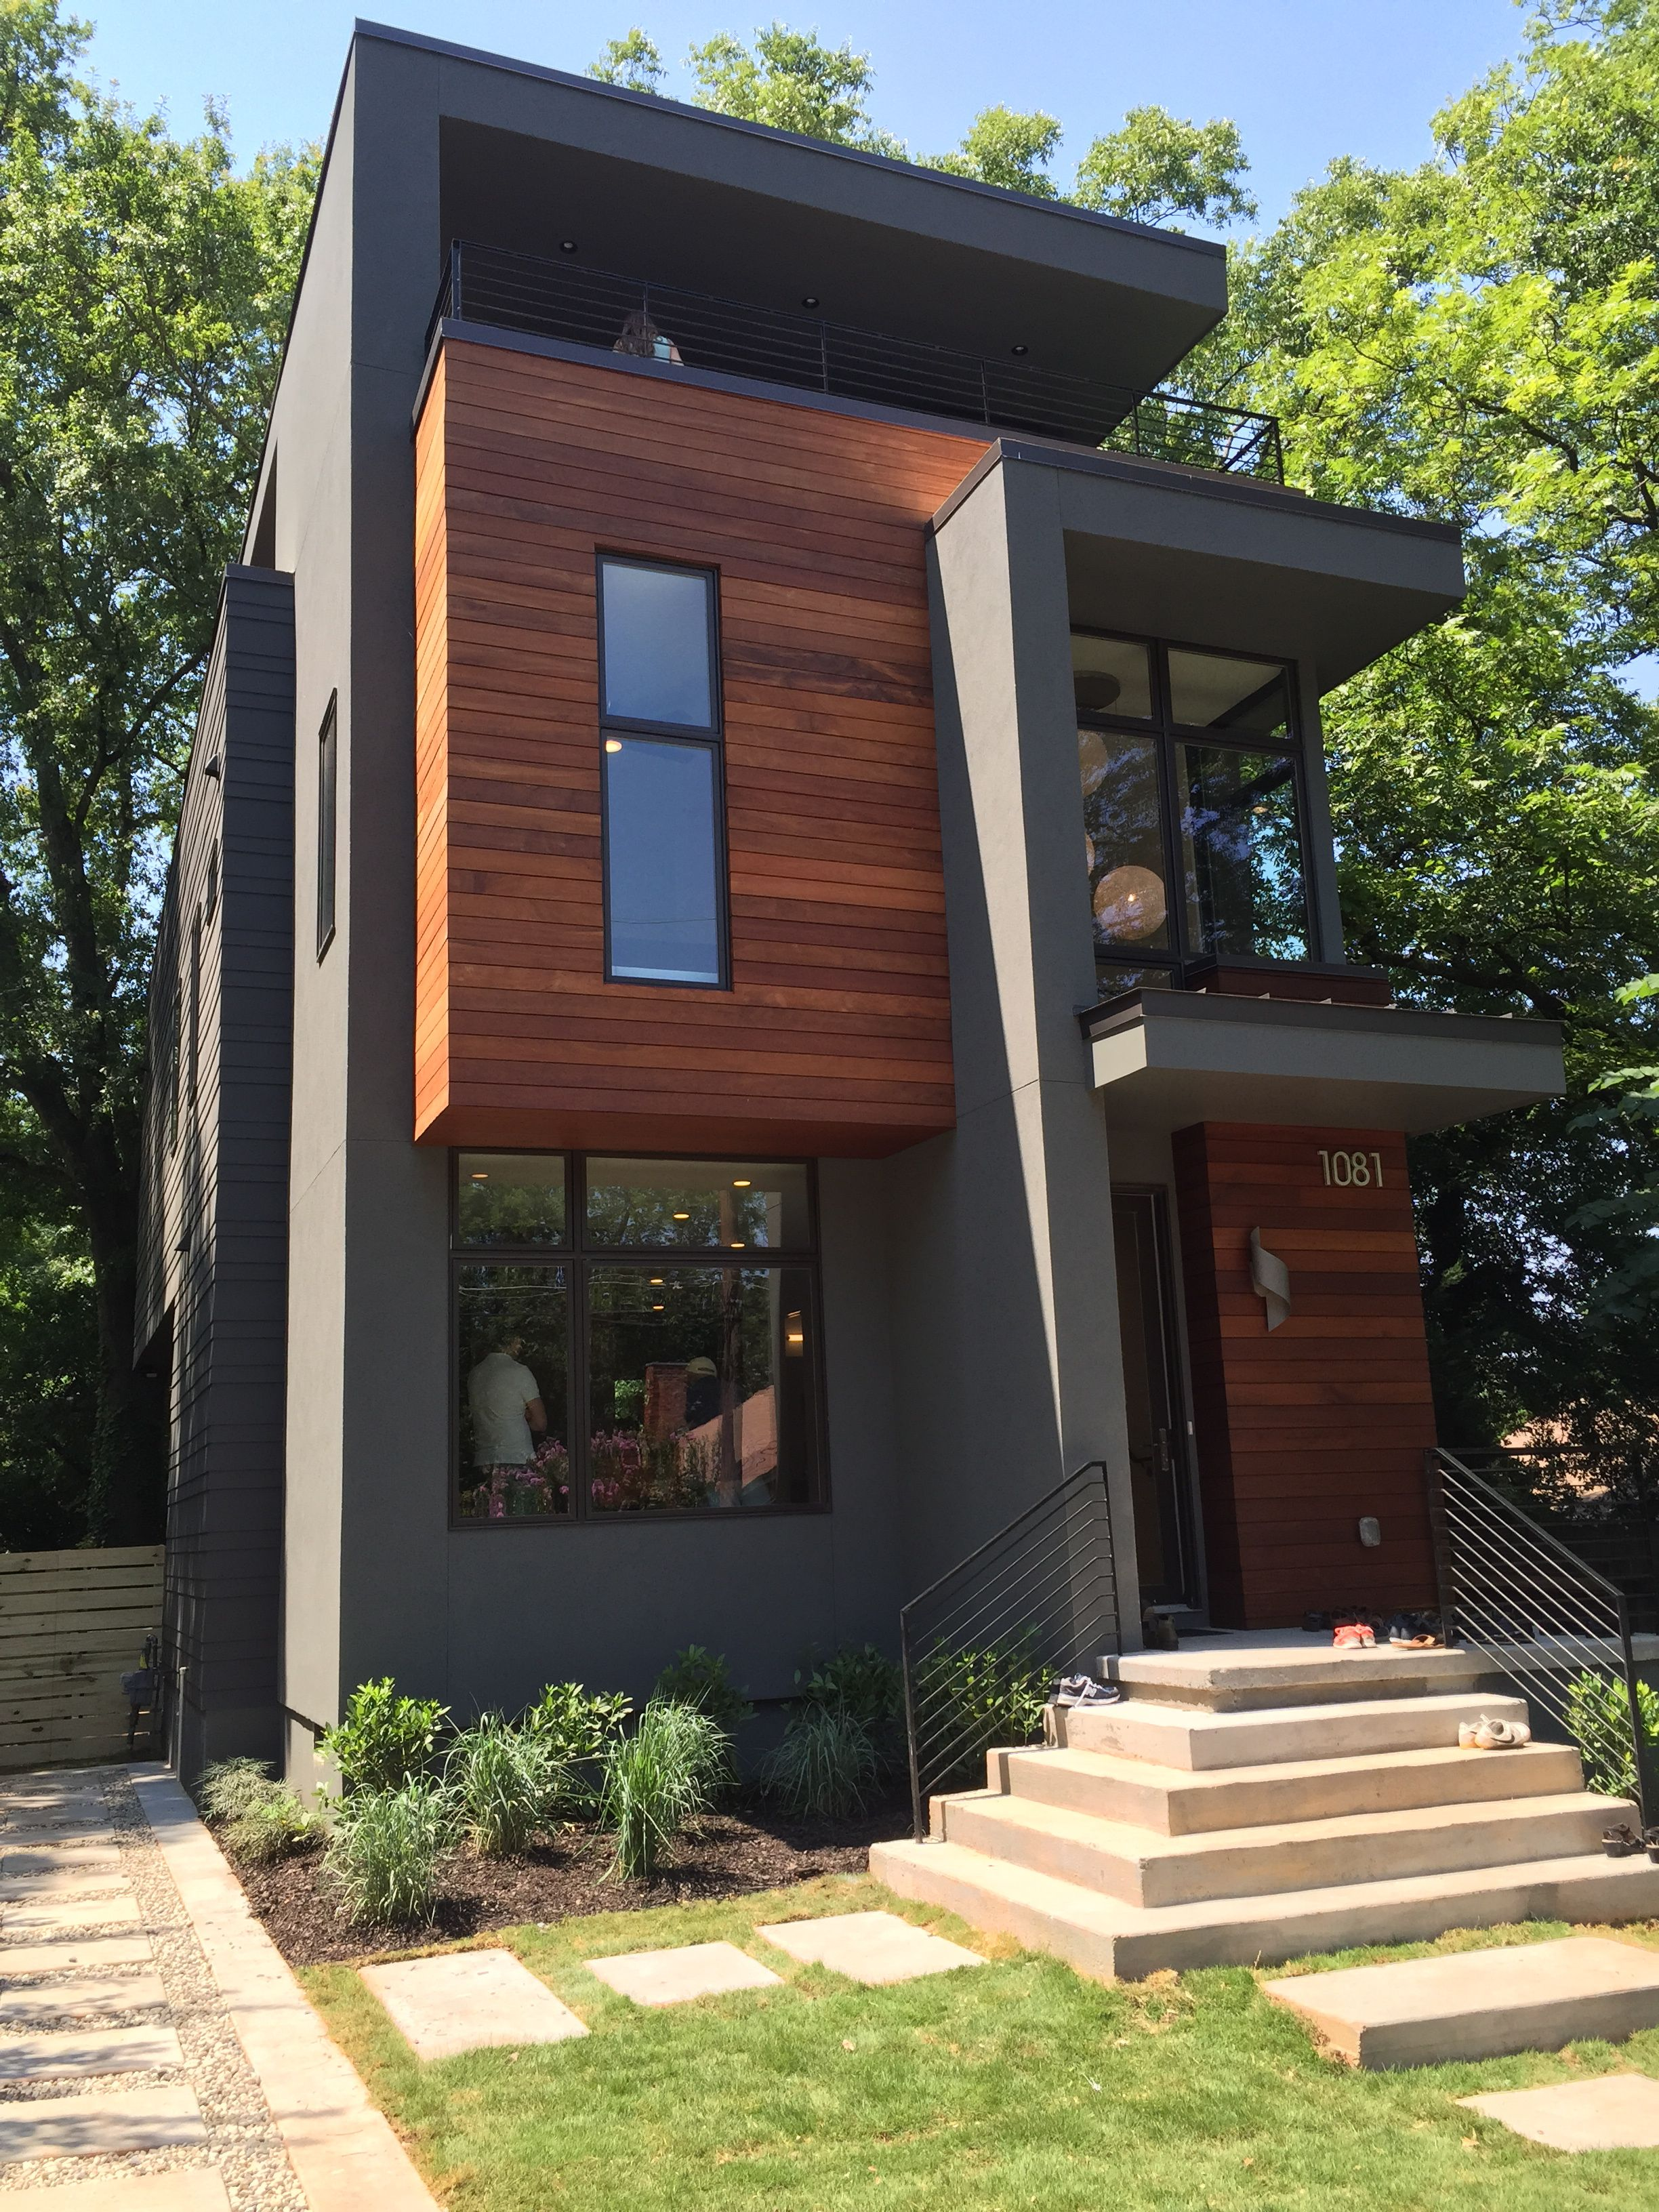 My Dream House For Me And My Wife Tiny House Exterior